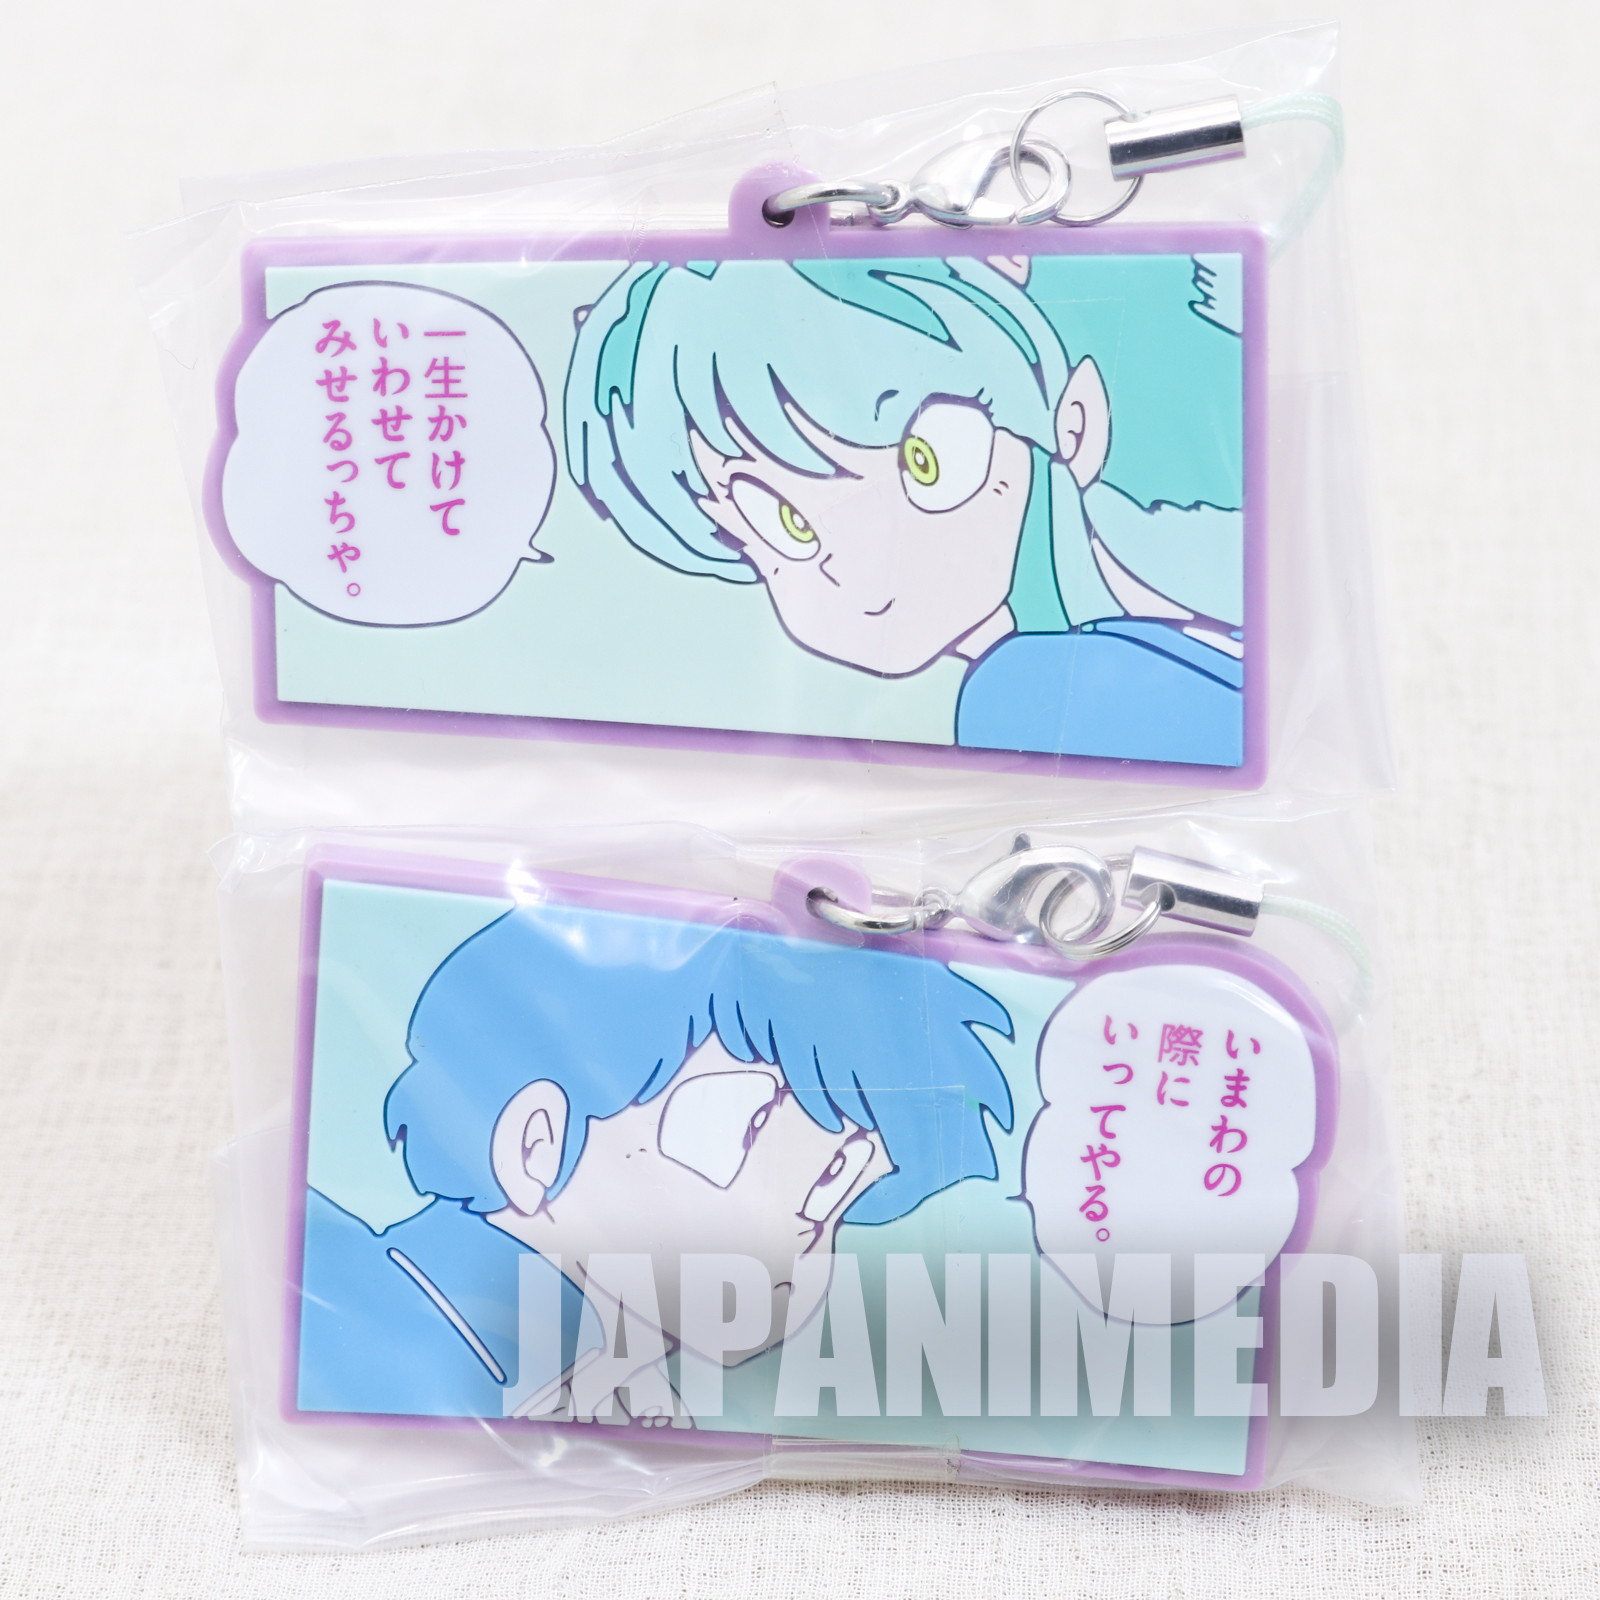 Urusei Yatsura LUM & Ataru Rubber Strap 2pc Set JAPAN ANIME MANGA